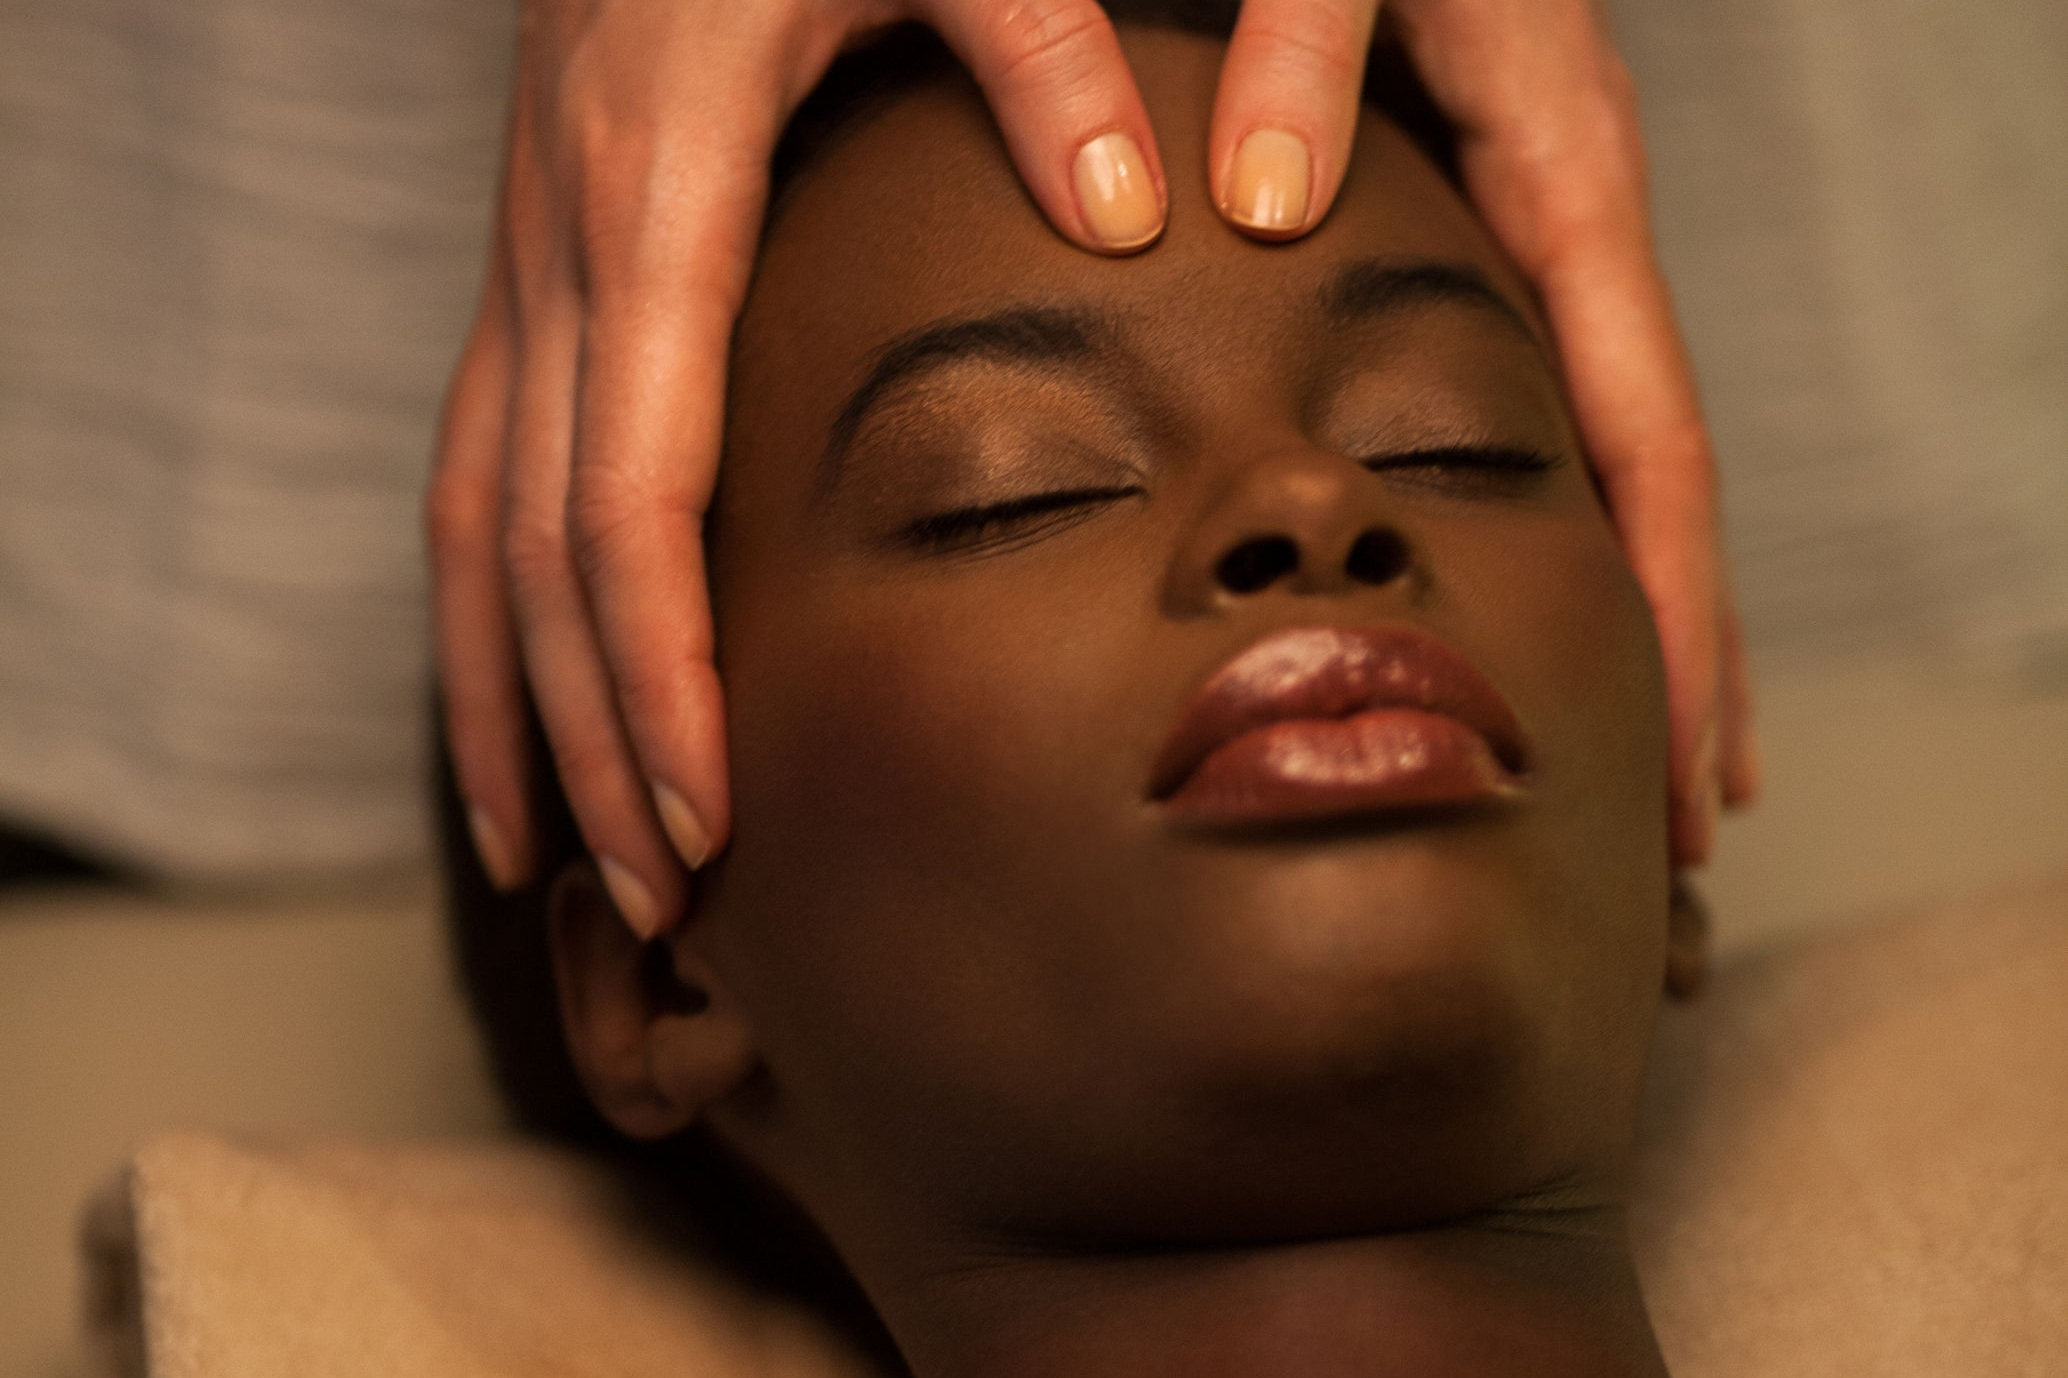 only $75 + up - massage